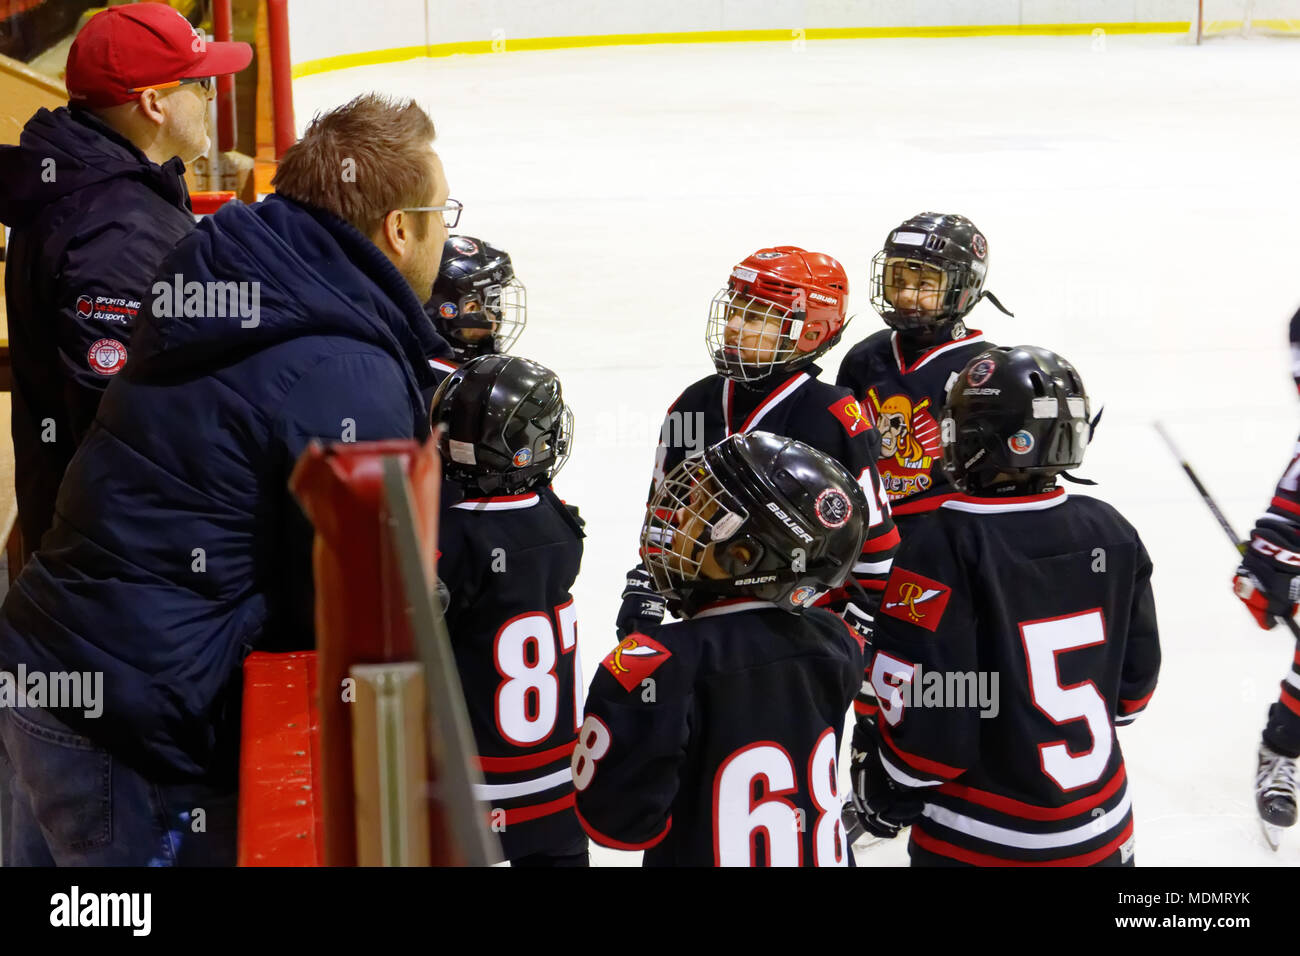 Young ice hockey players being addressed by their coach before a match - Stock Image